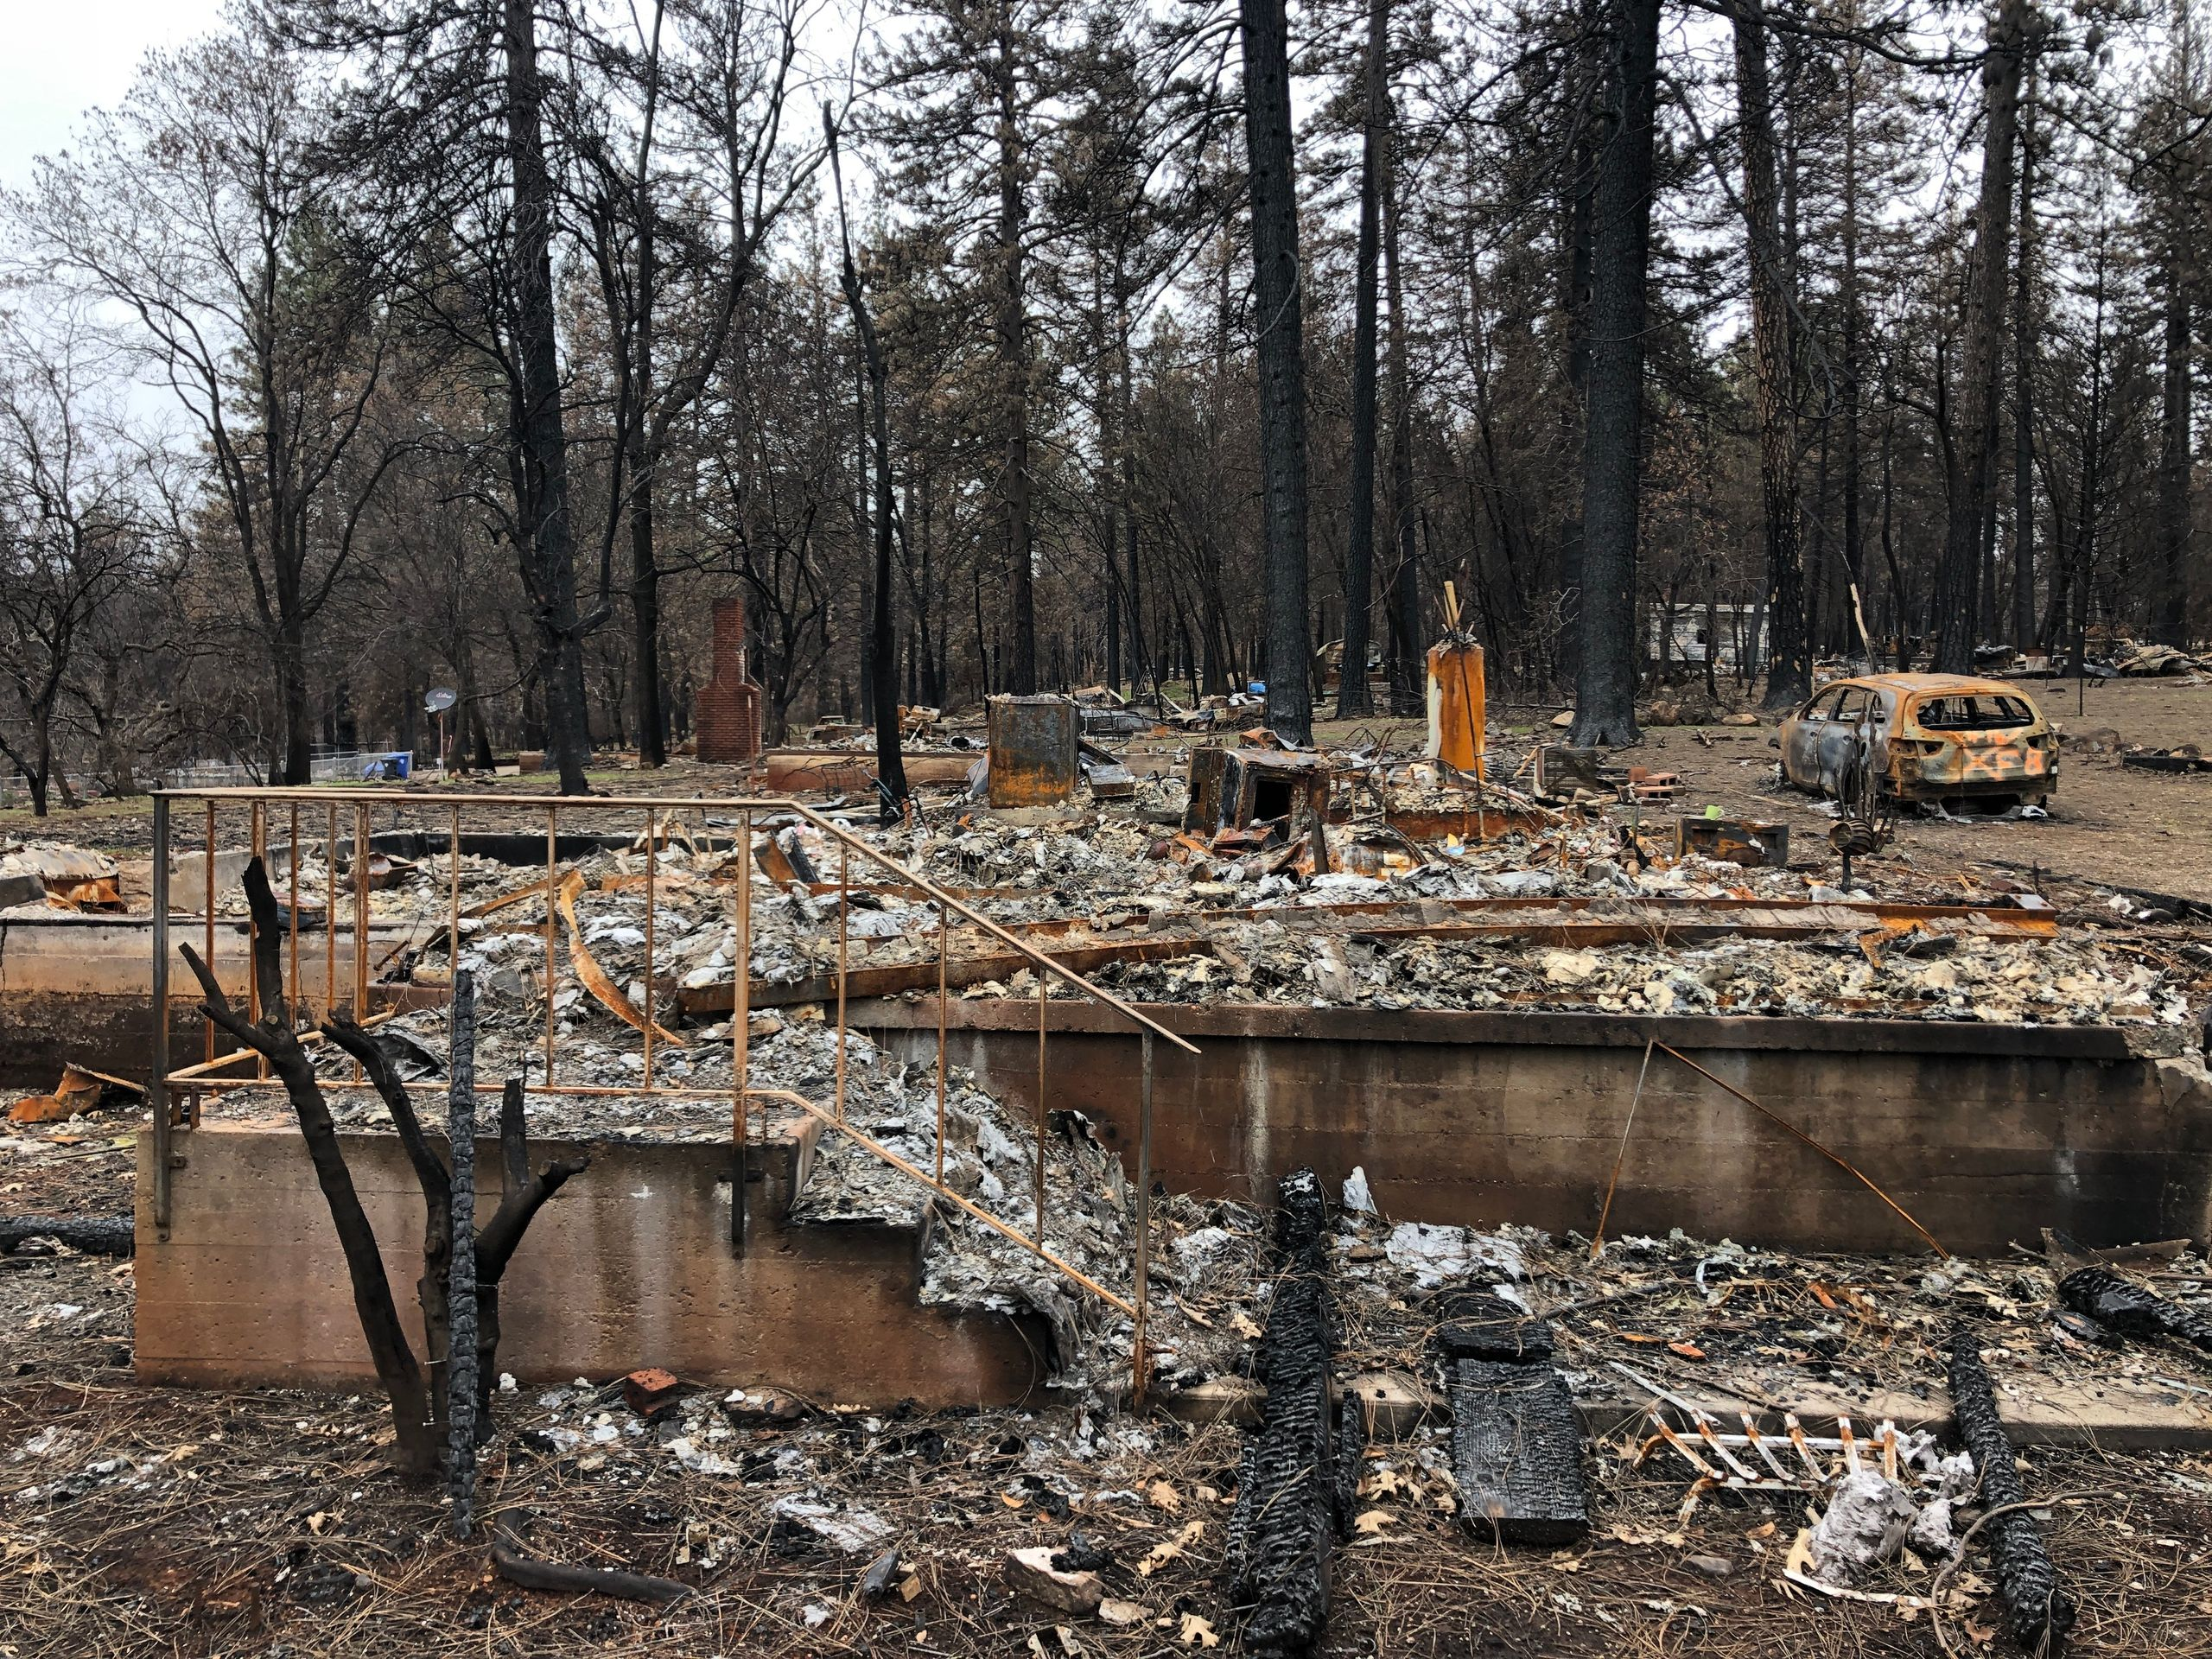 What's left of Pamela Howell and Stacy Hawley's house, months after the Camp fire. — Paradise, Feb. 12